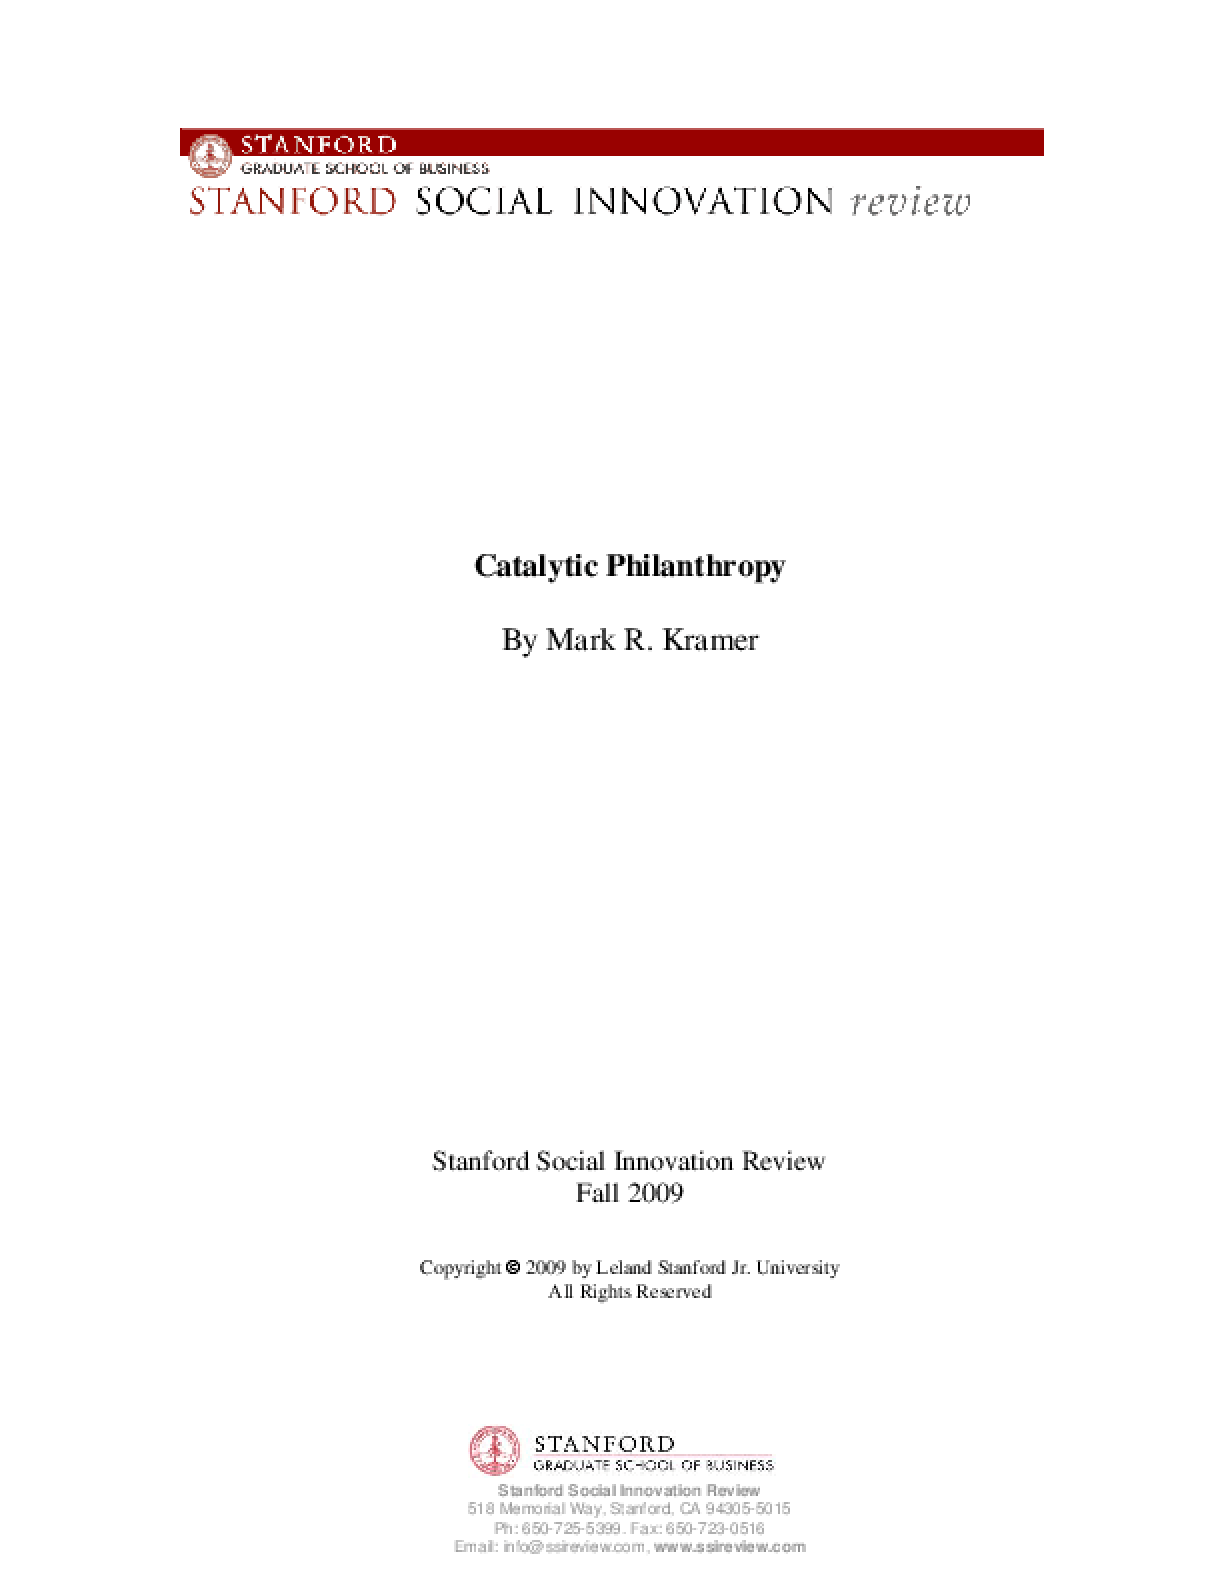 Catalytic Philanthropy